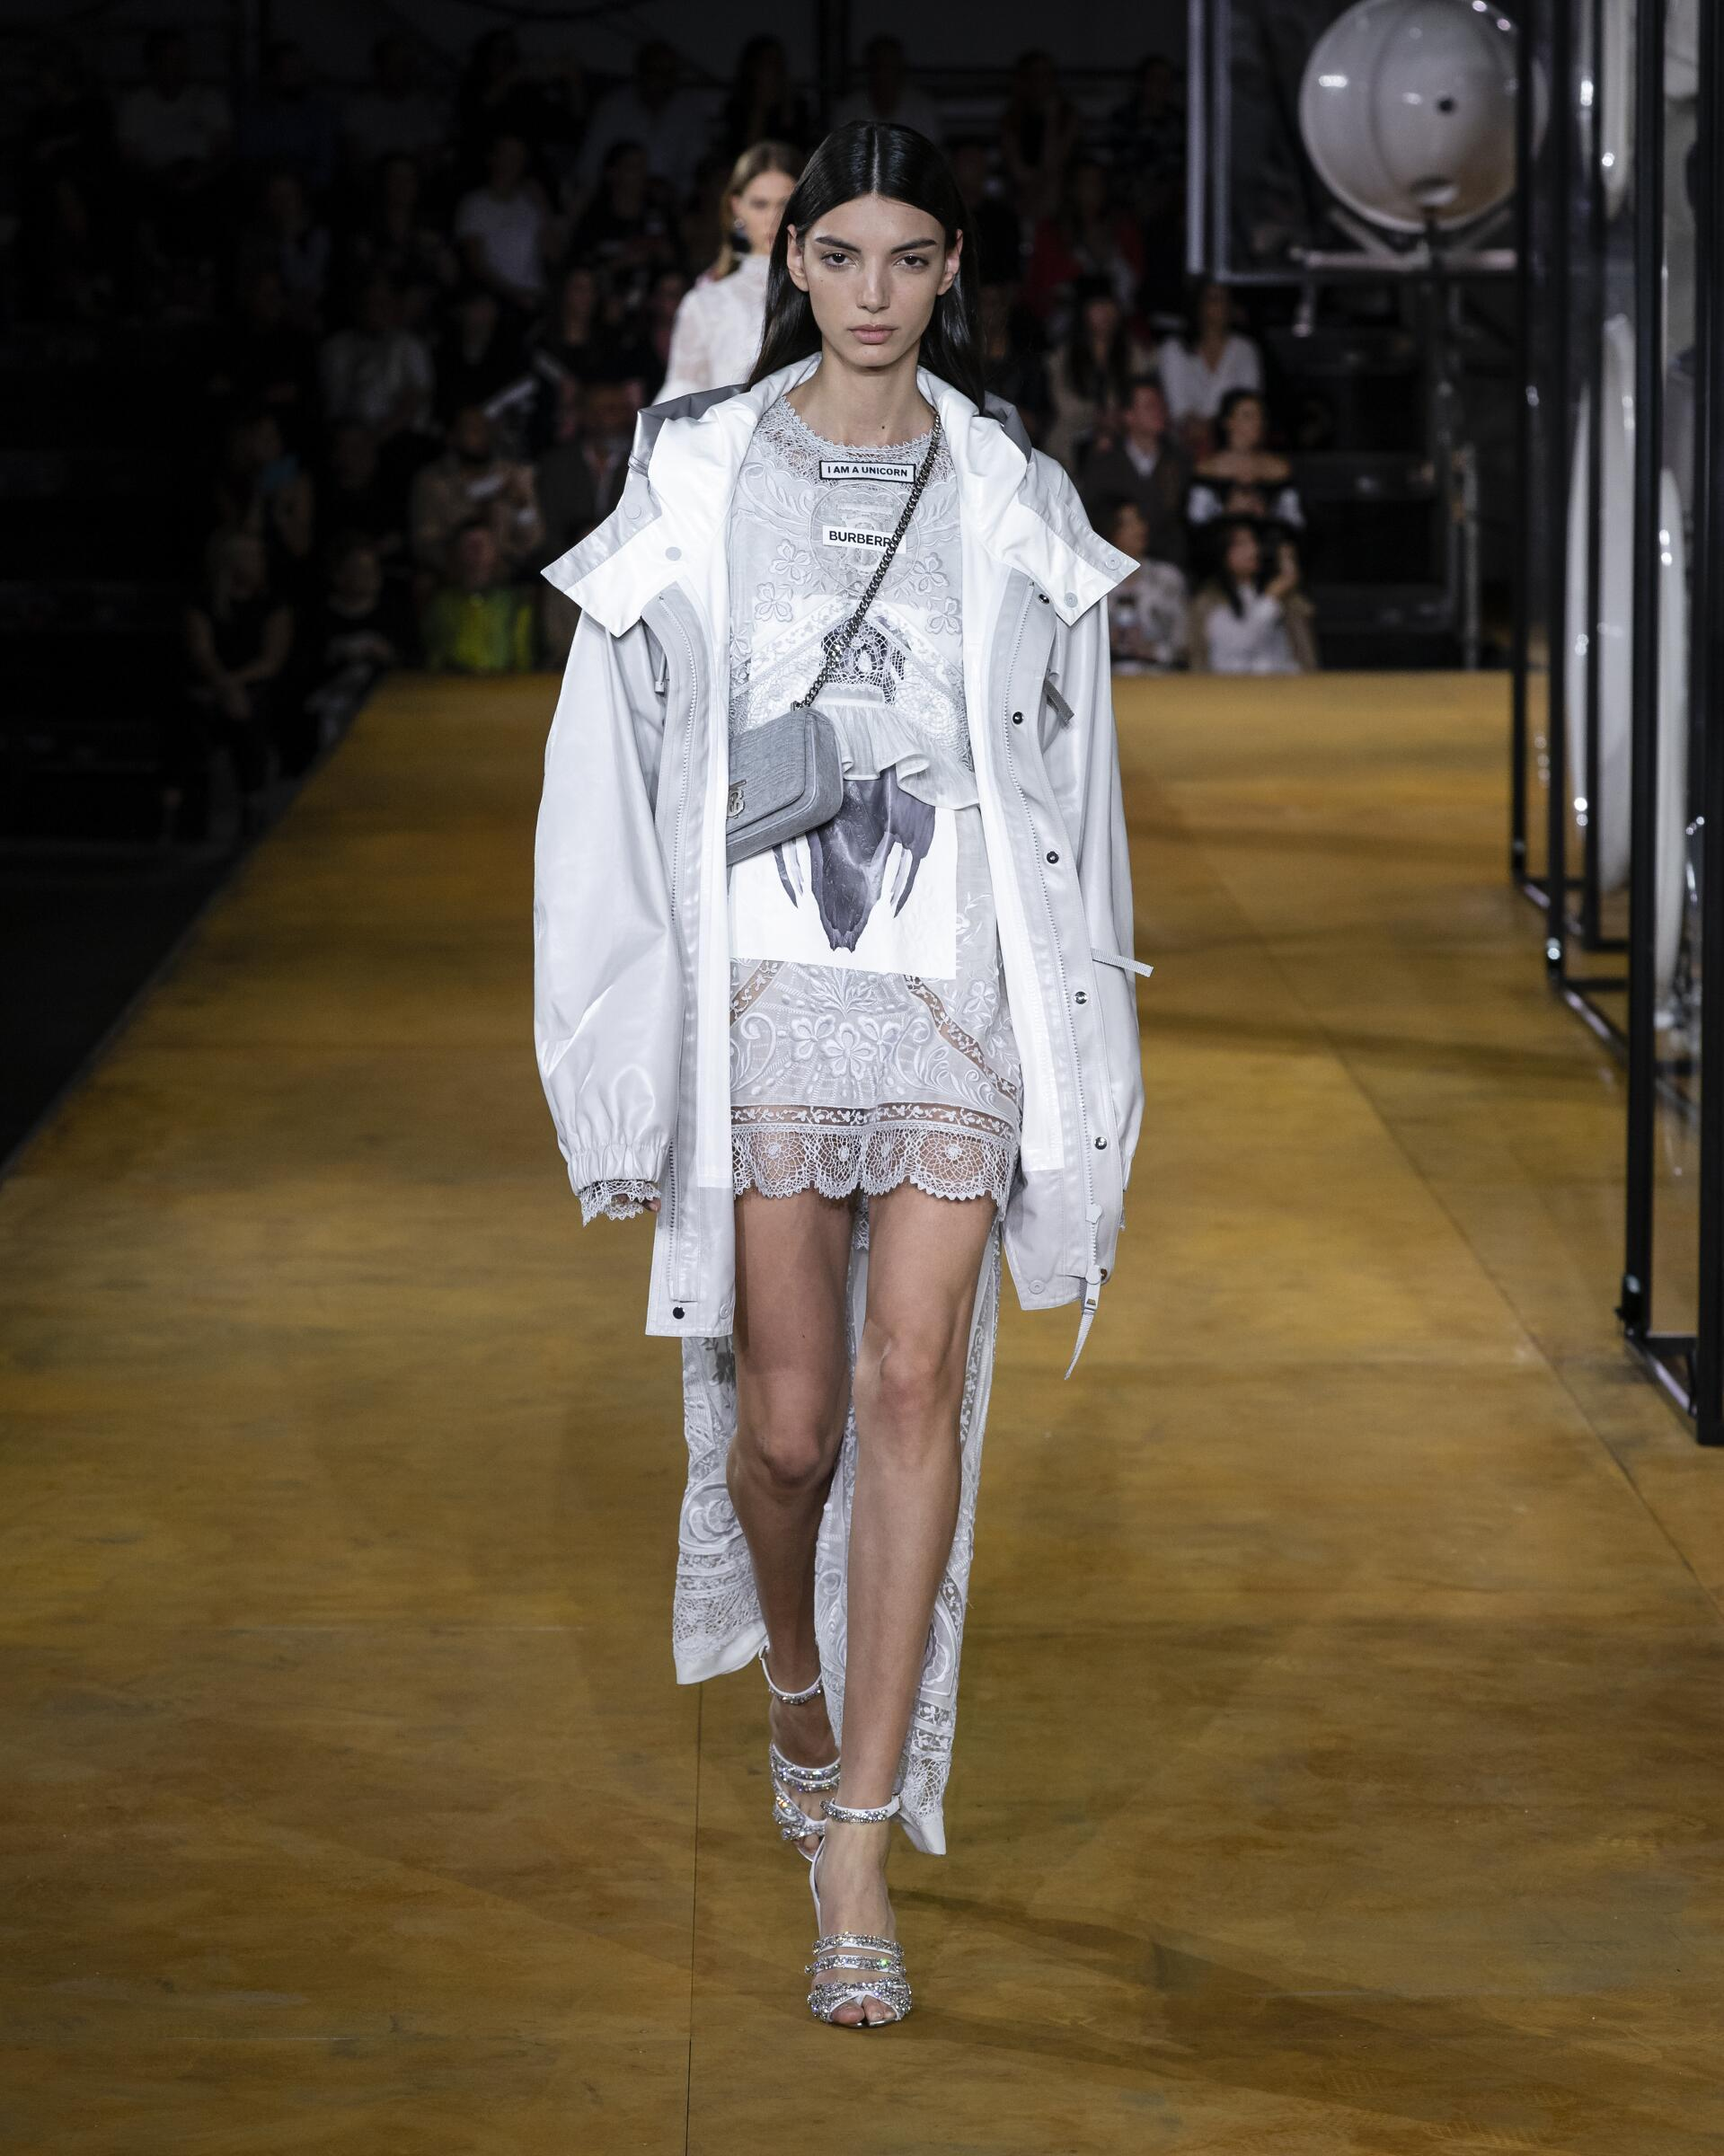 2020 Burberry Spring Summer Woman